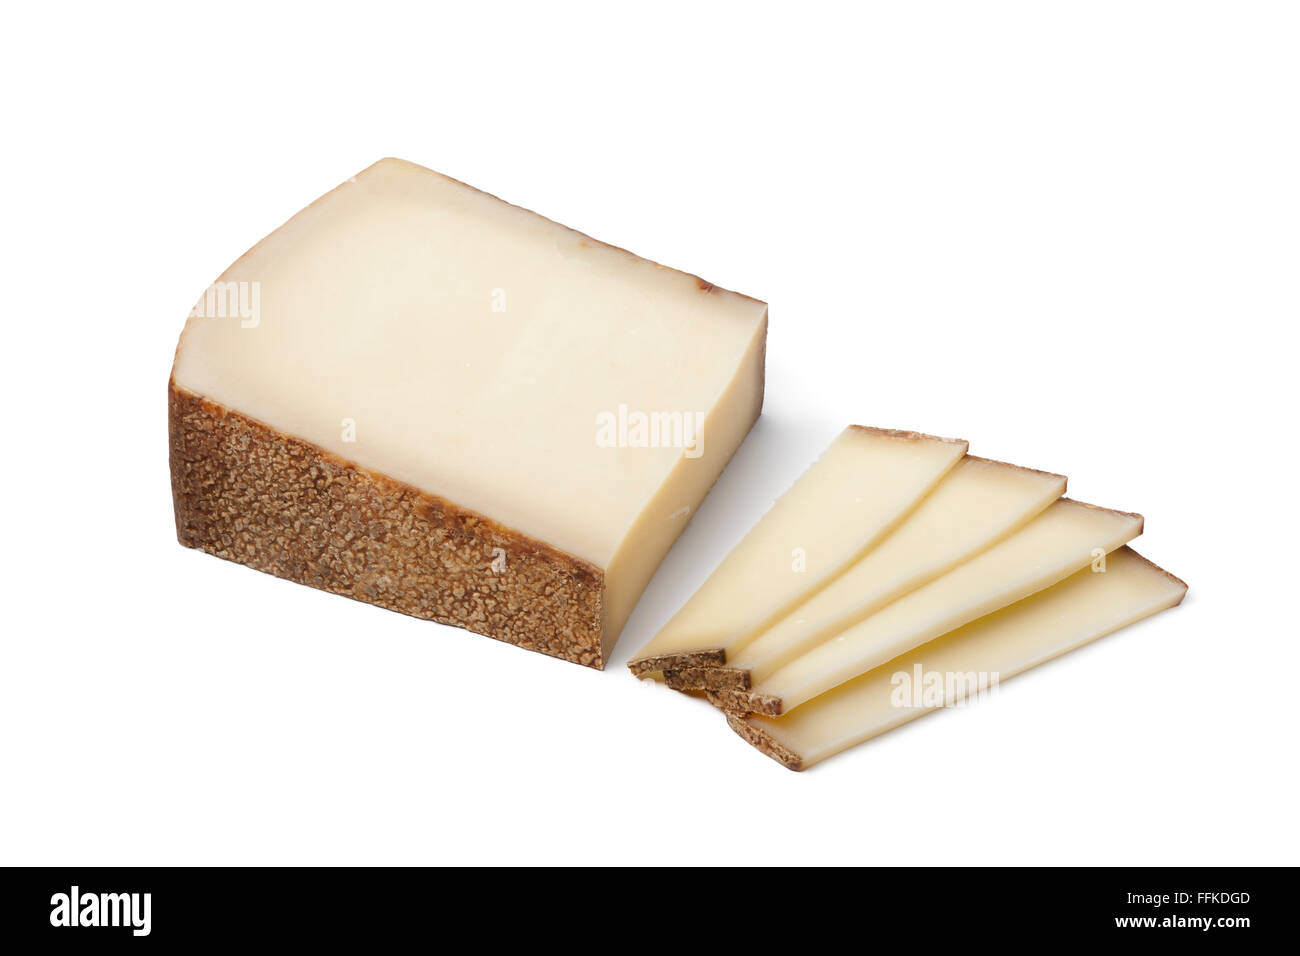 Piece of Swiss Gruyere cheese and slices on white background - Stock Image